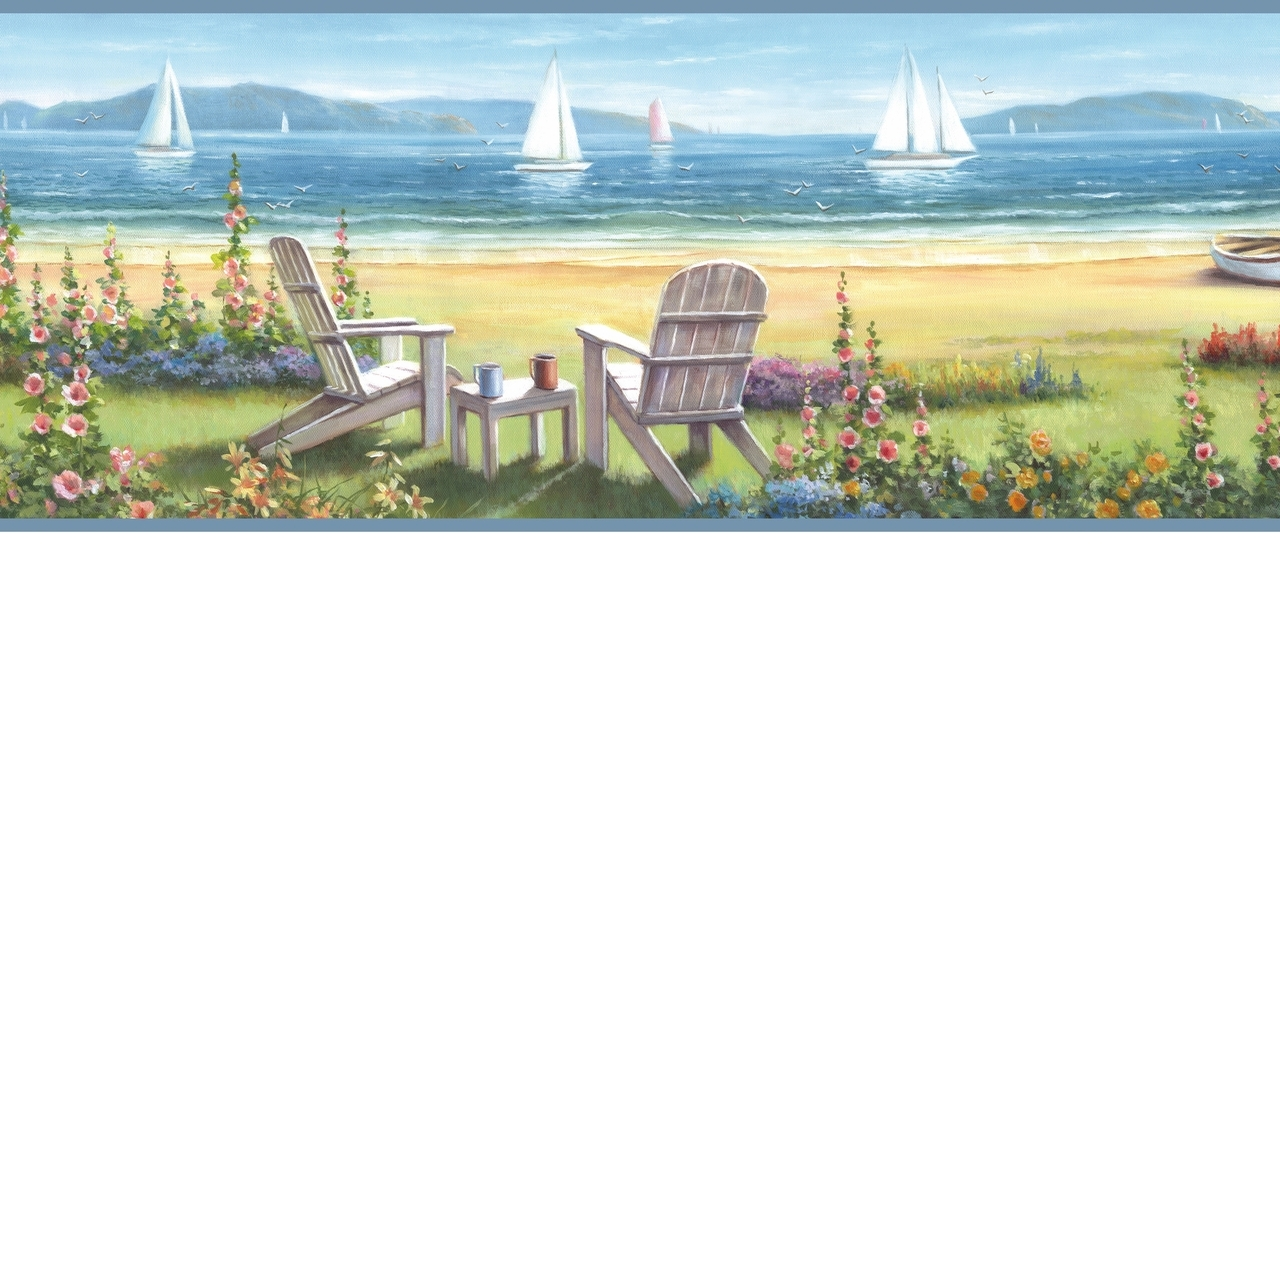 http-www-papermywalls-com-borders-by-chesapeake-seaside-cottage-border-bbc-wallpaper-wp4403653